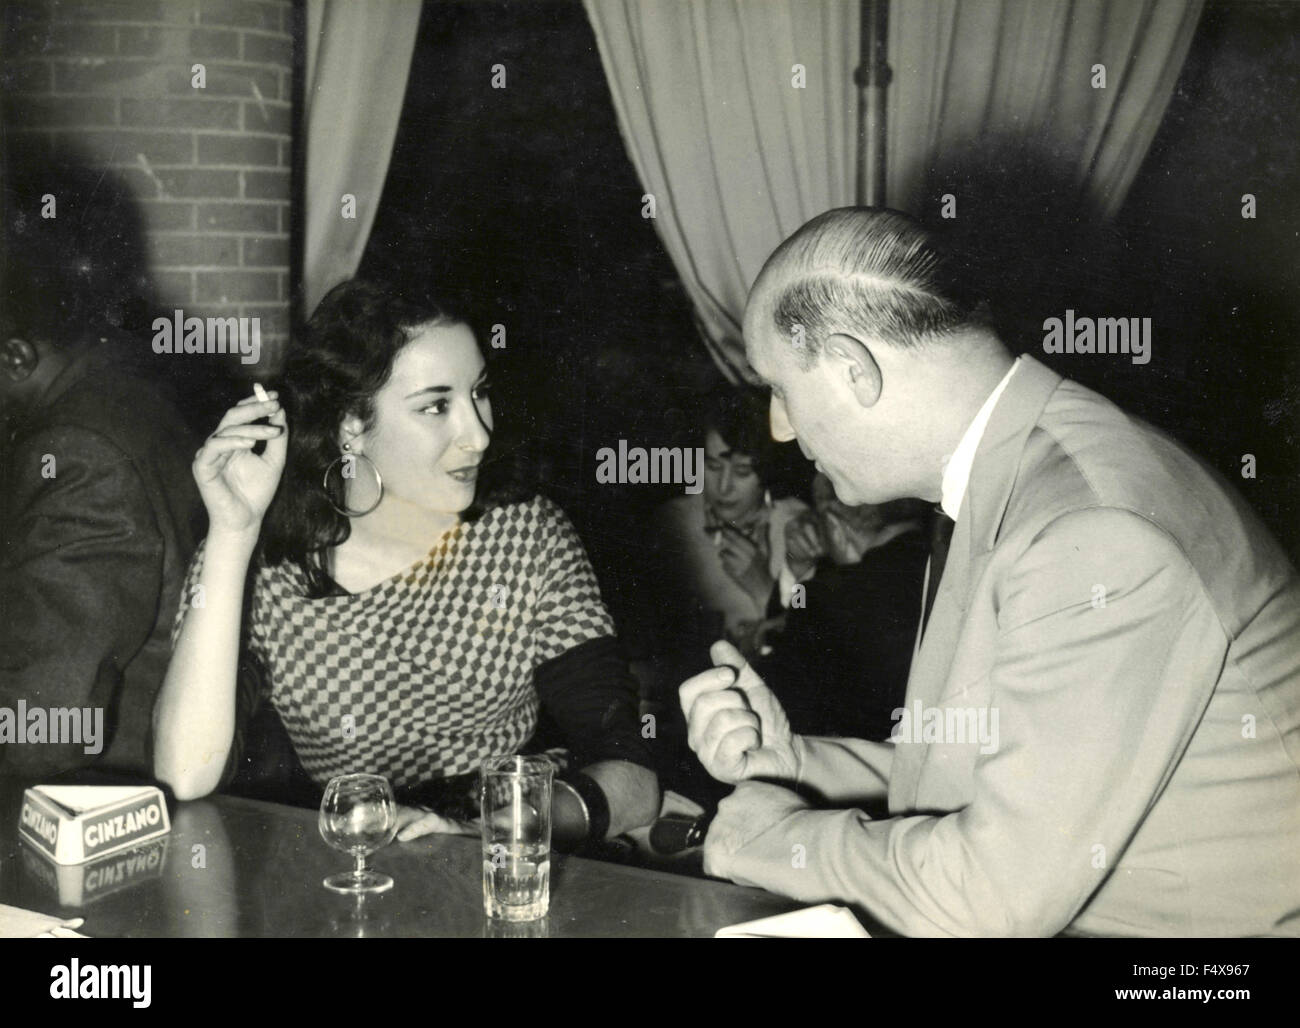 Julie Robinson drinks with the owner of the local 'Victor', Rome, Italy - Stock Image